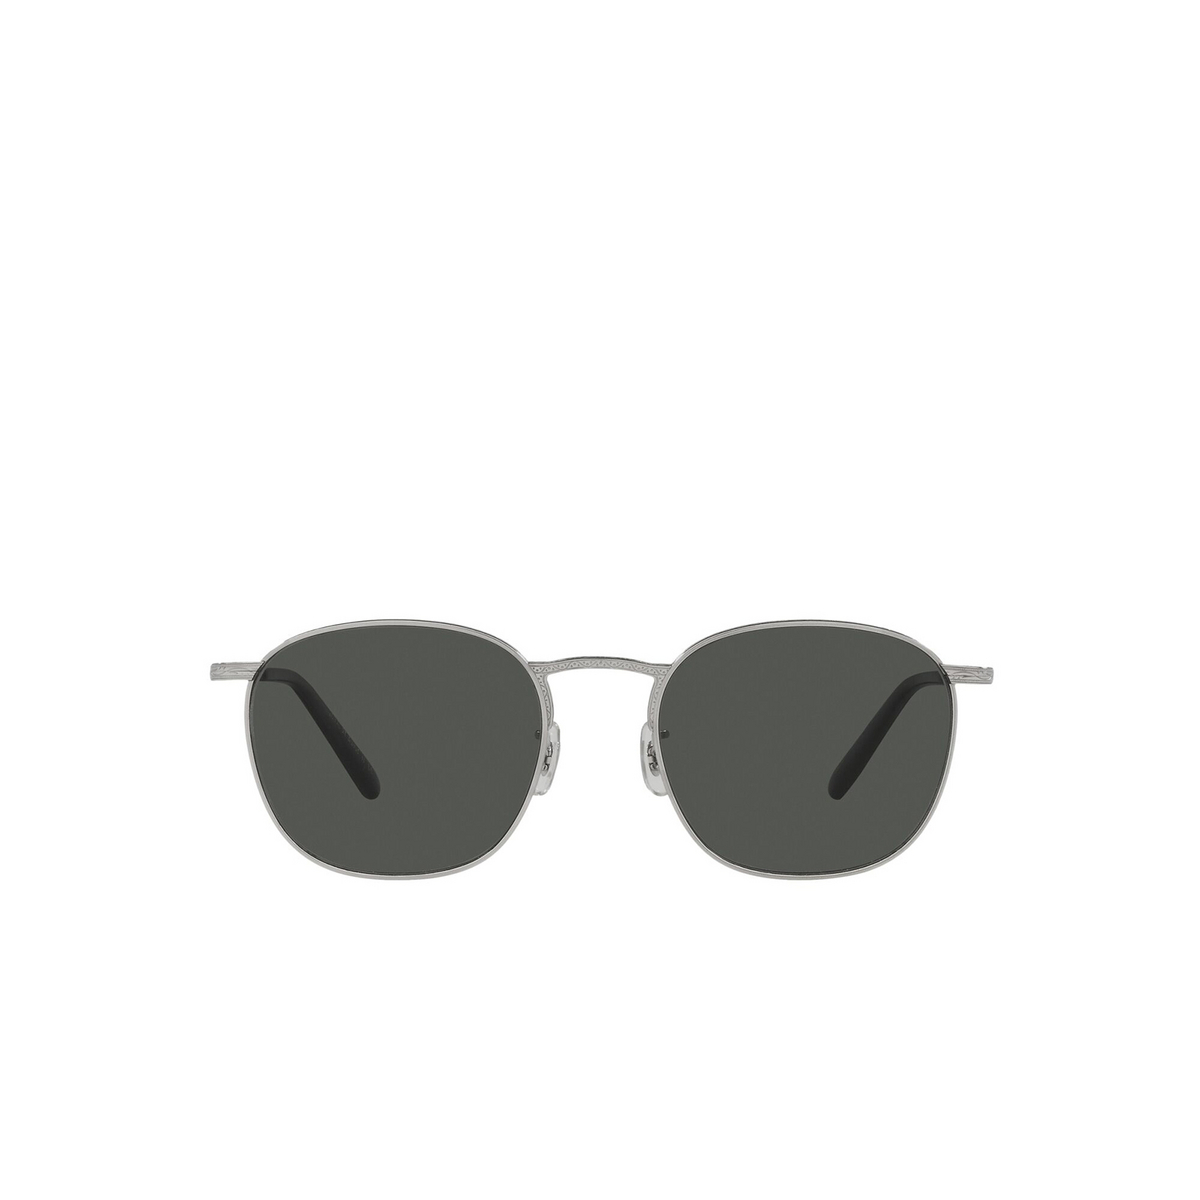 Oliver Peoples® Square Sunglasses: Goldsen Sun OV1285ST color Silver 5036P2 - front view.